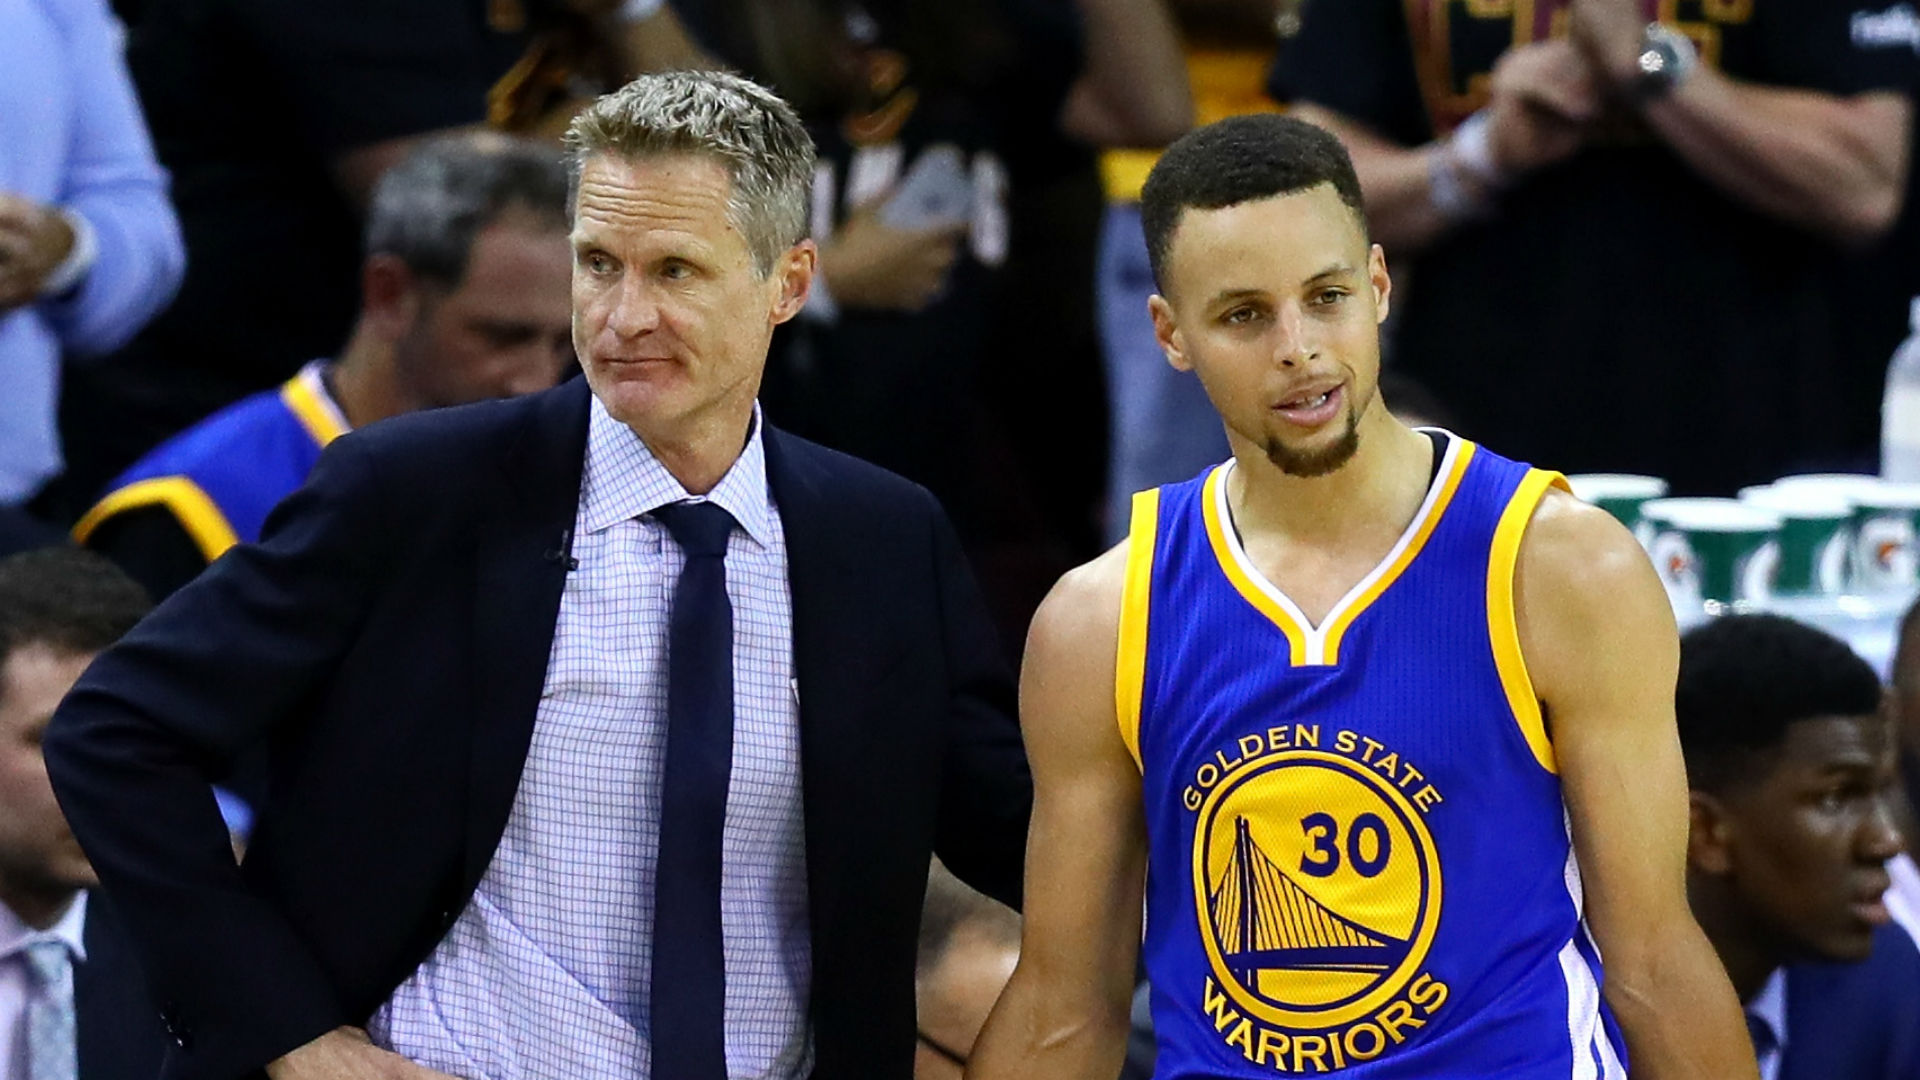 Stephen Curry, Steve Kerr hit with $25,000 fines - SLAMonline Philippines